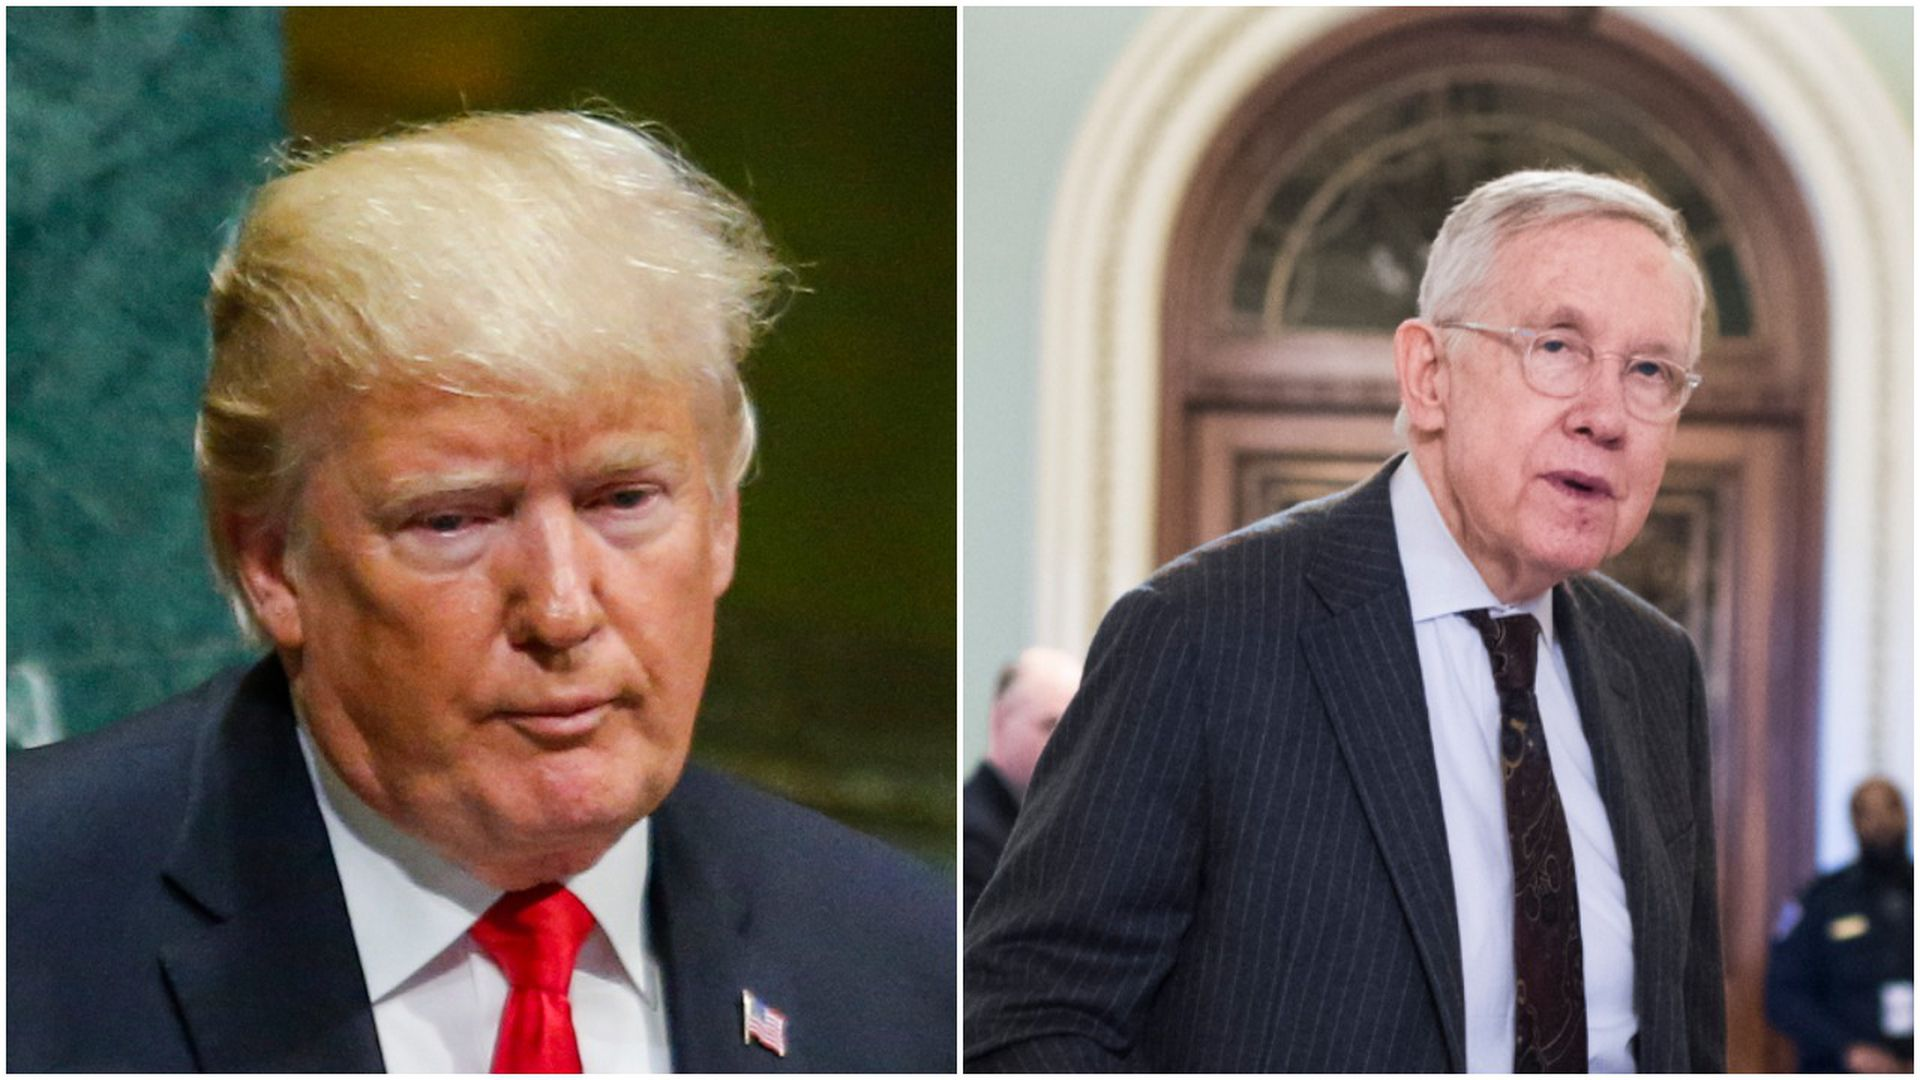 Cropped photo with Donald Trump and Harry reid